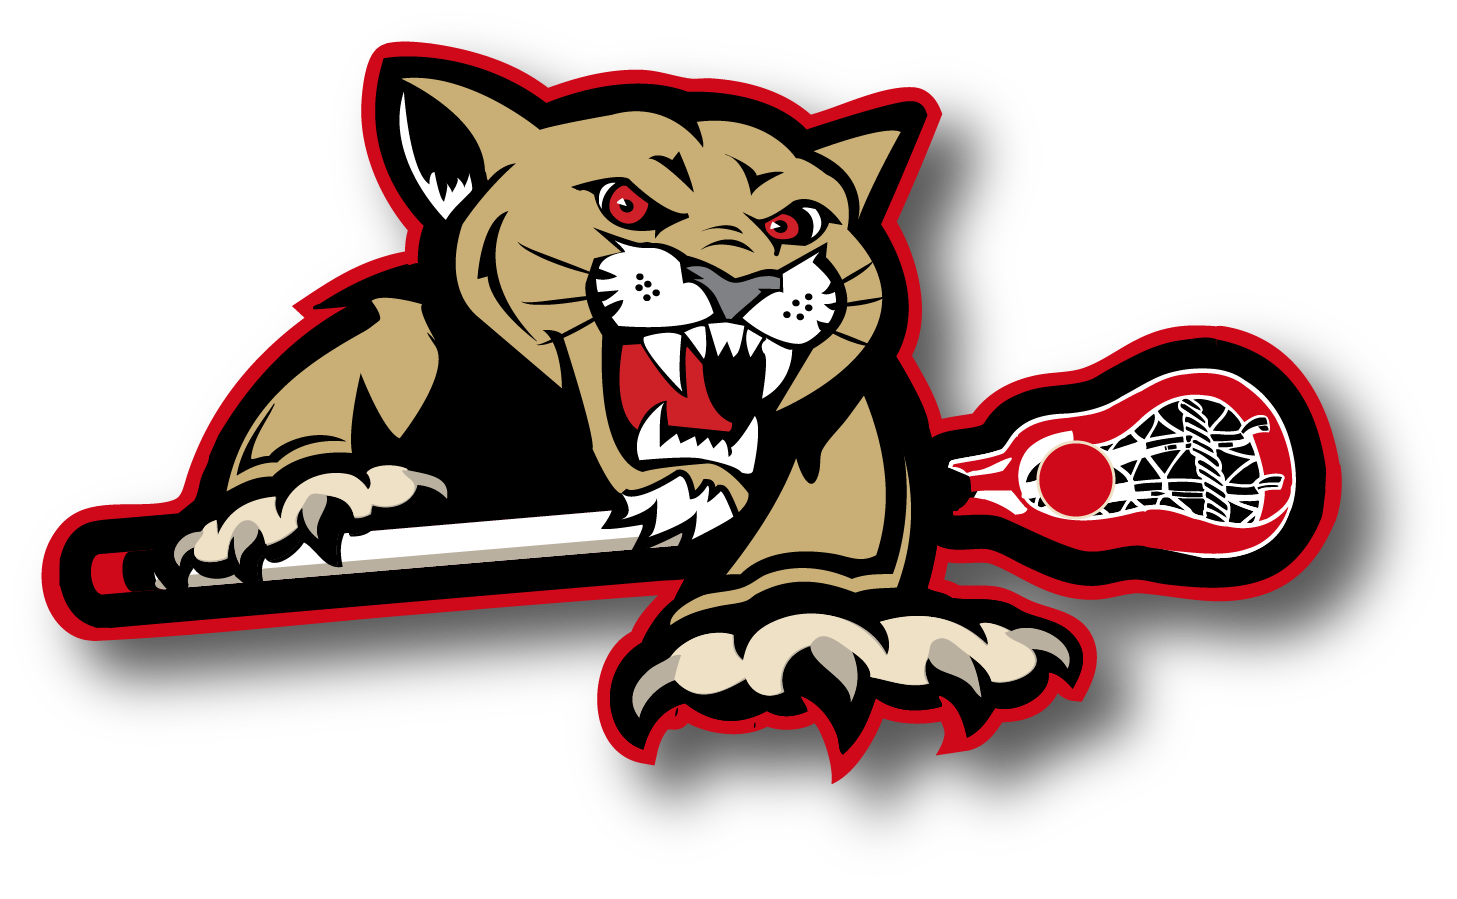 Catamount-BODY-LOGO-DS.png